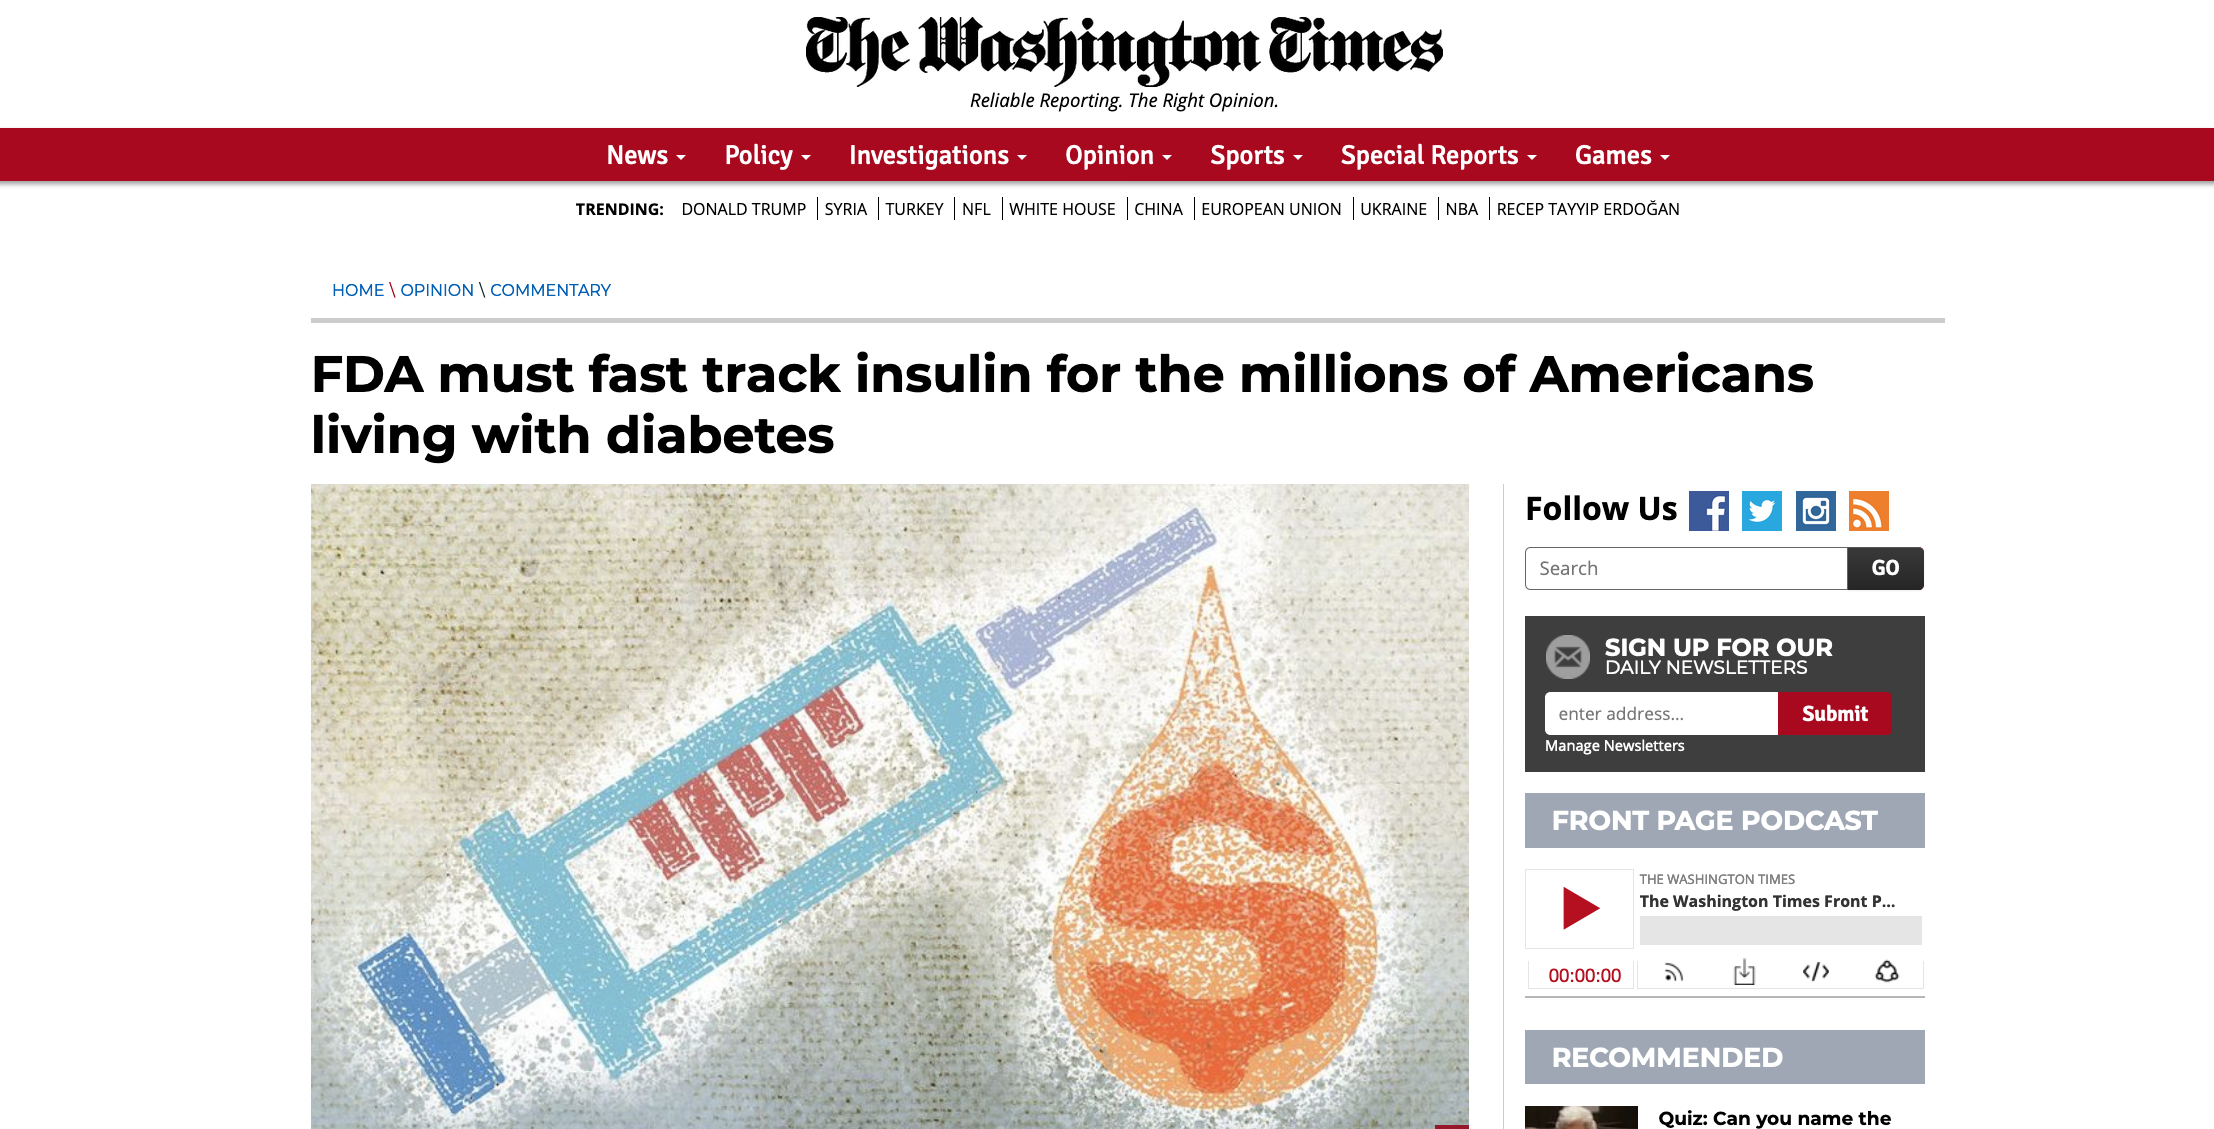 The Washington Times: FDA must fast track insulin for the millions of Americans living with diabetes